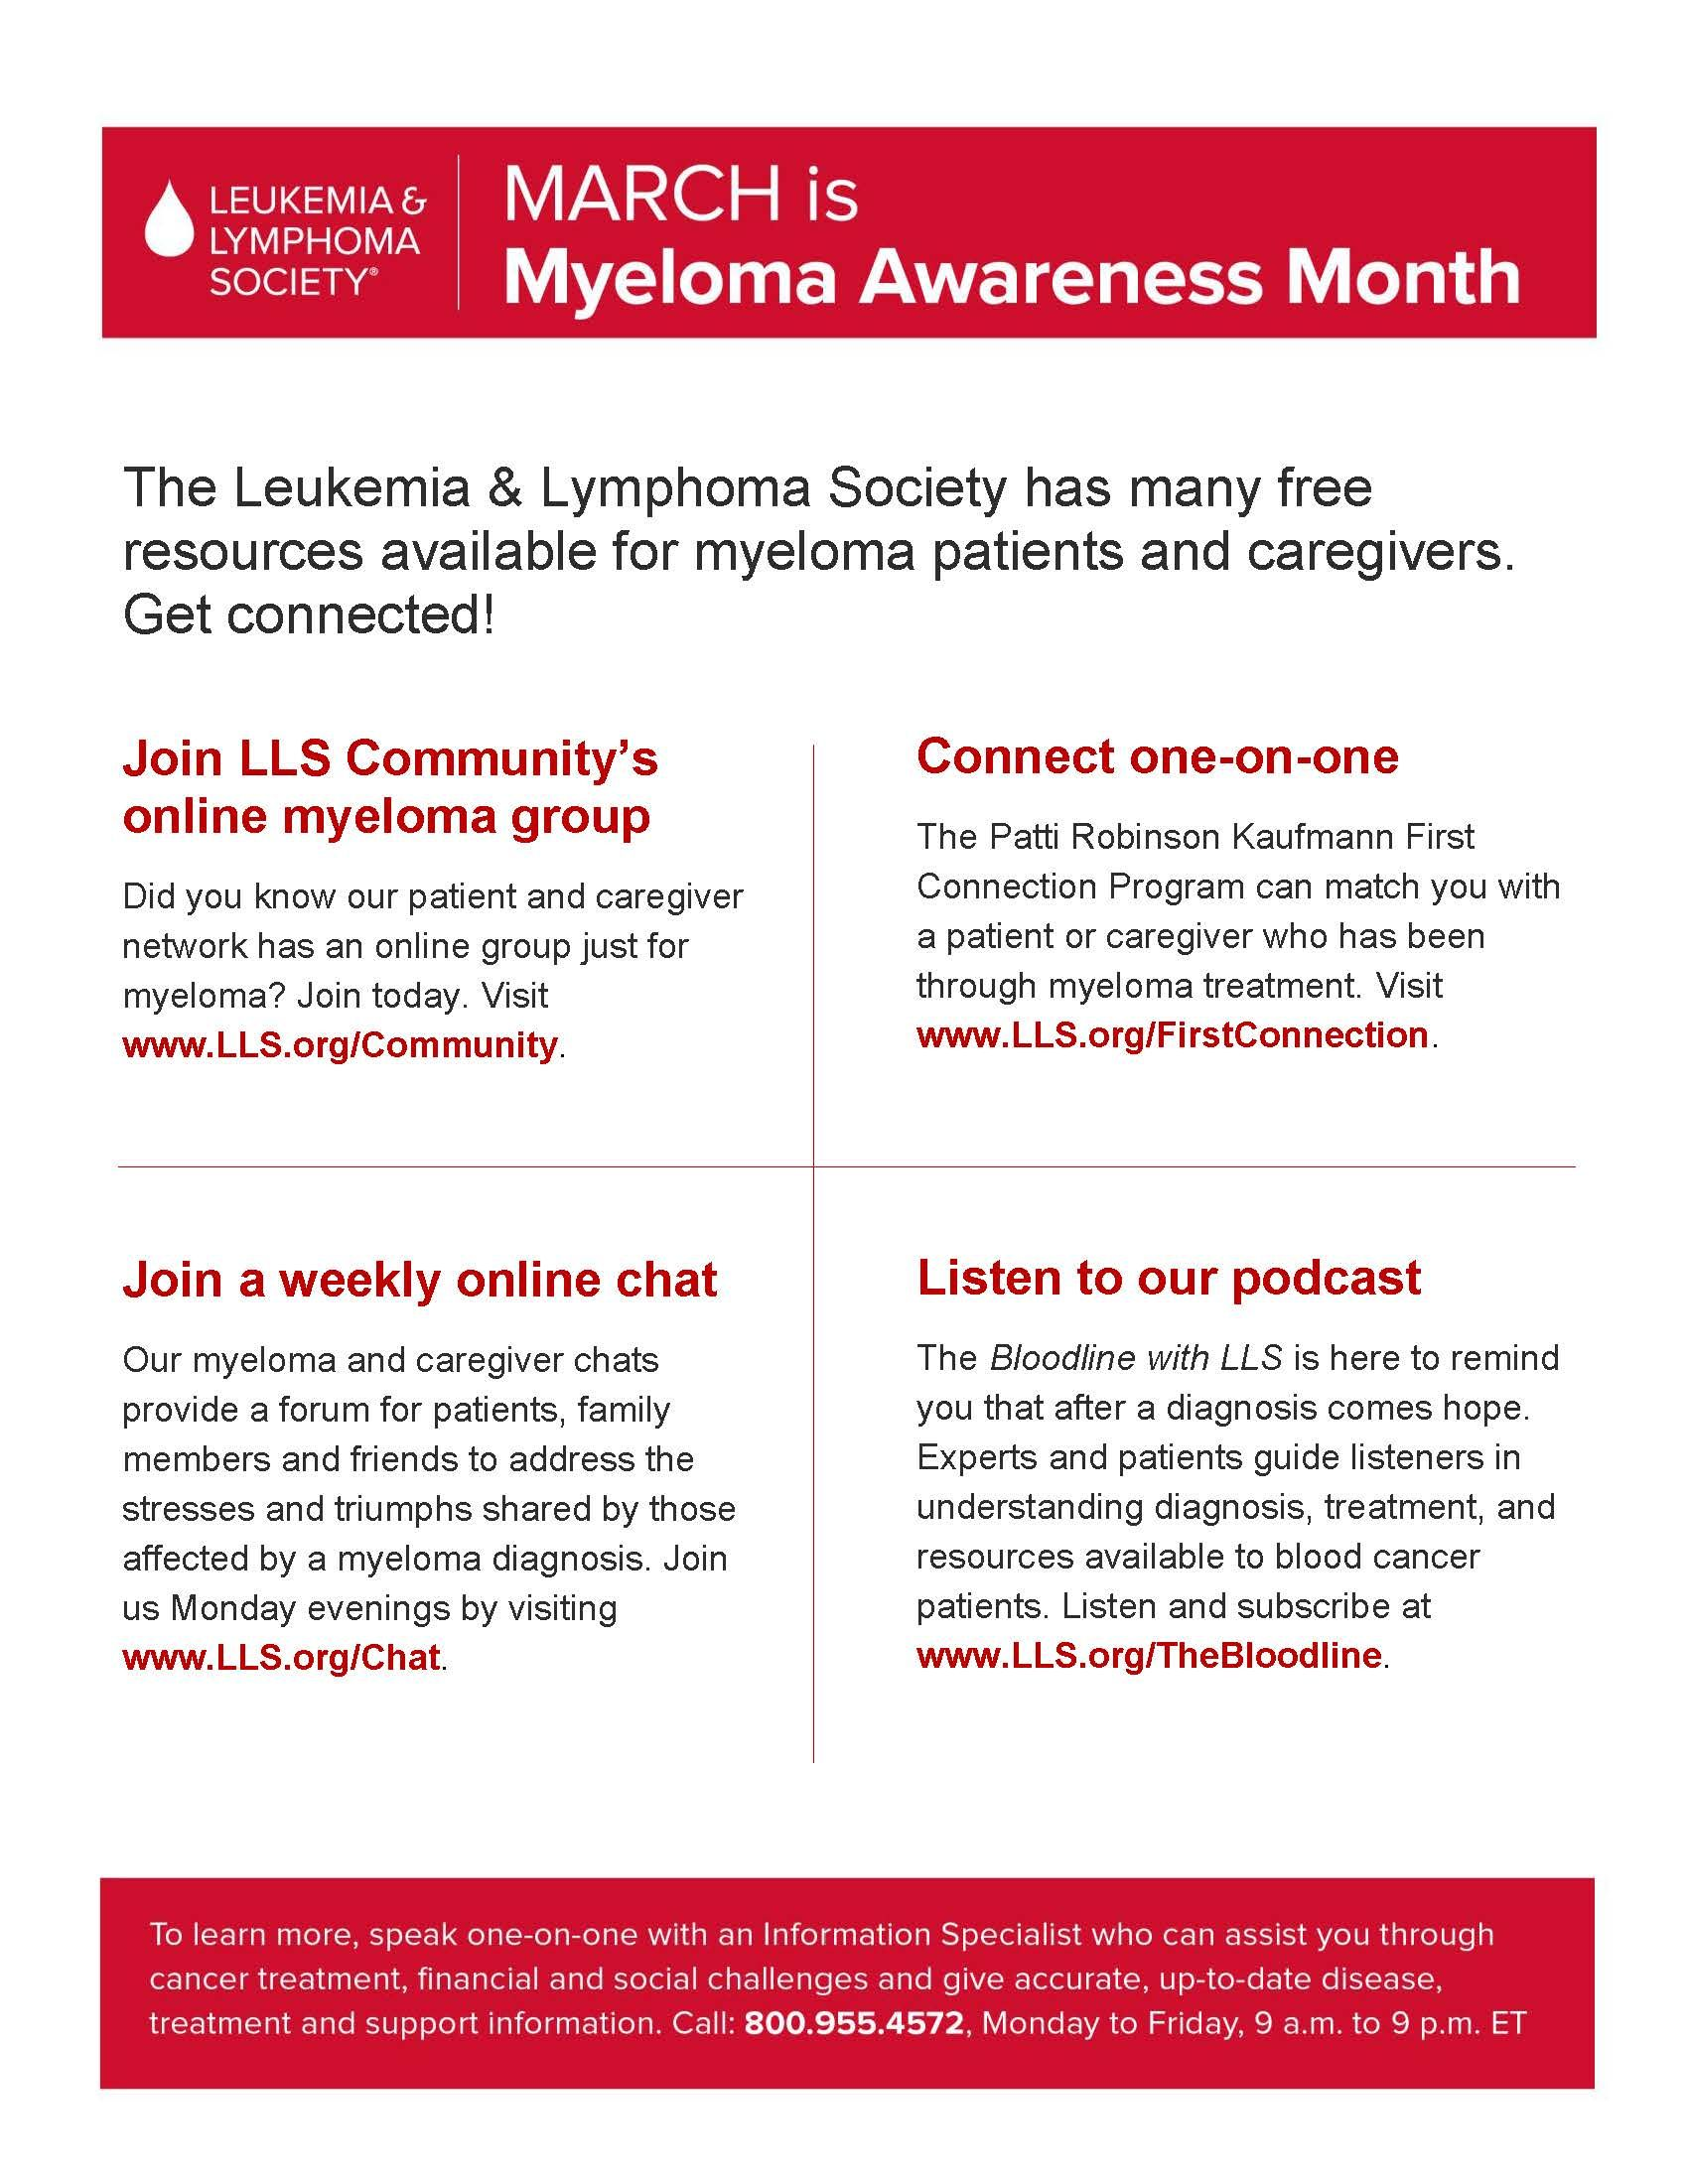 March is Myeloma Awareness Month!